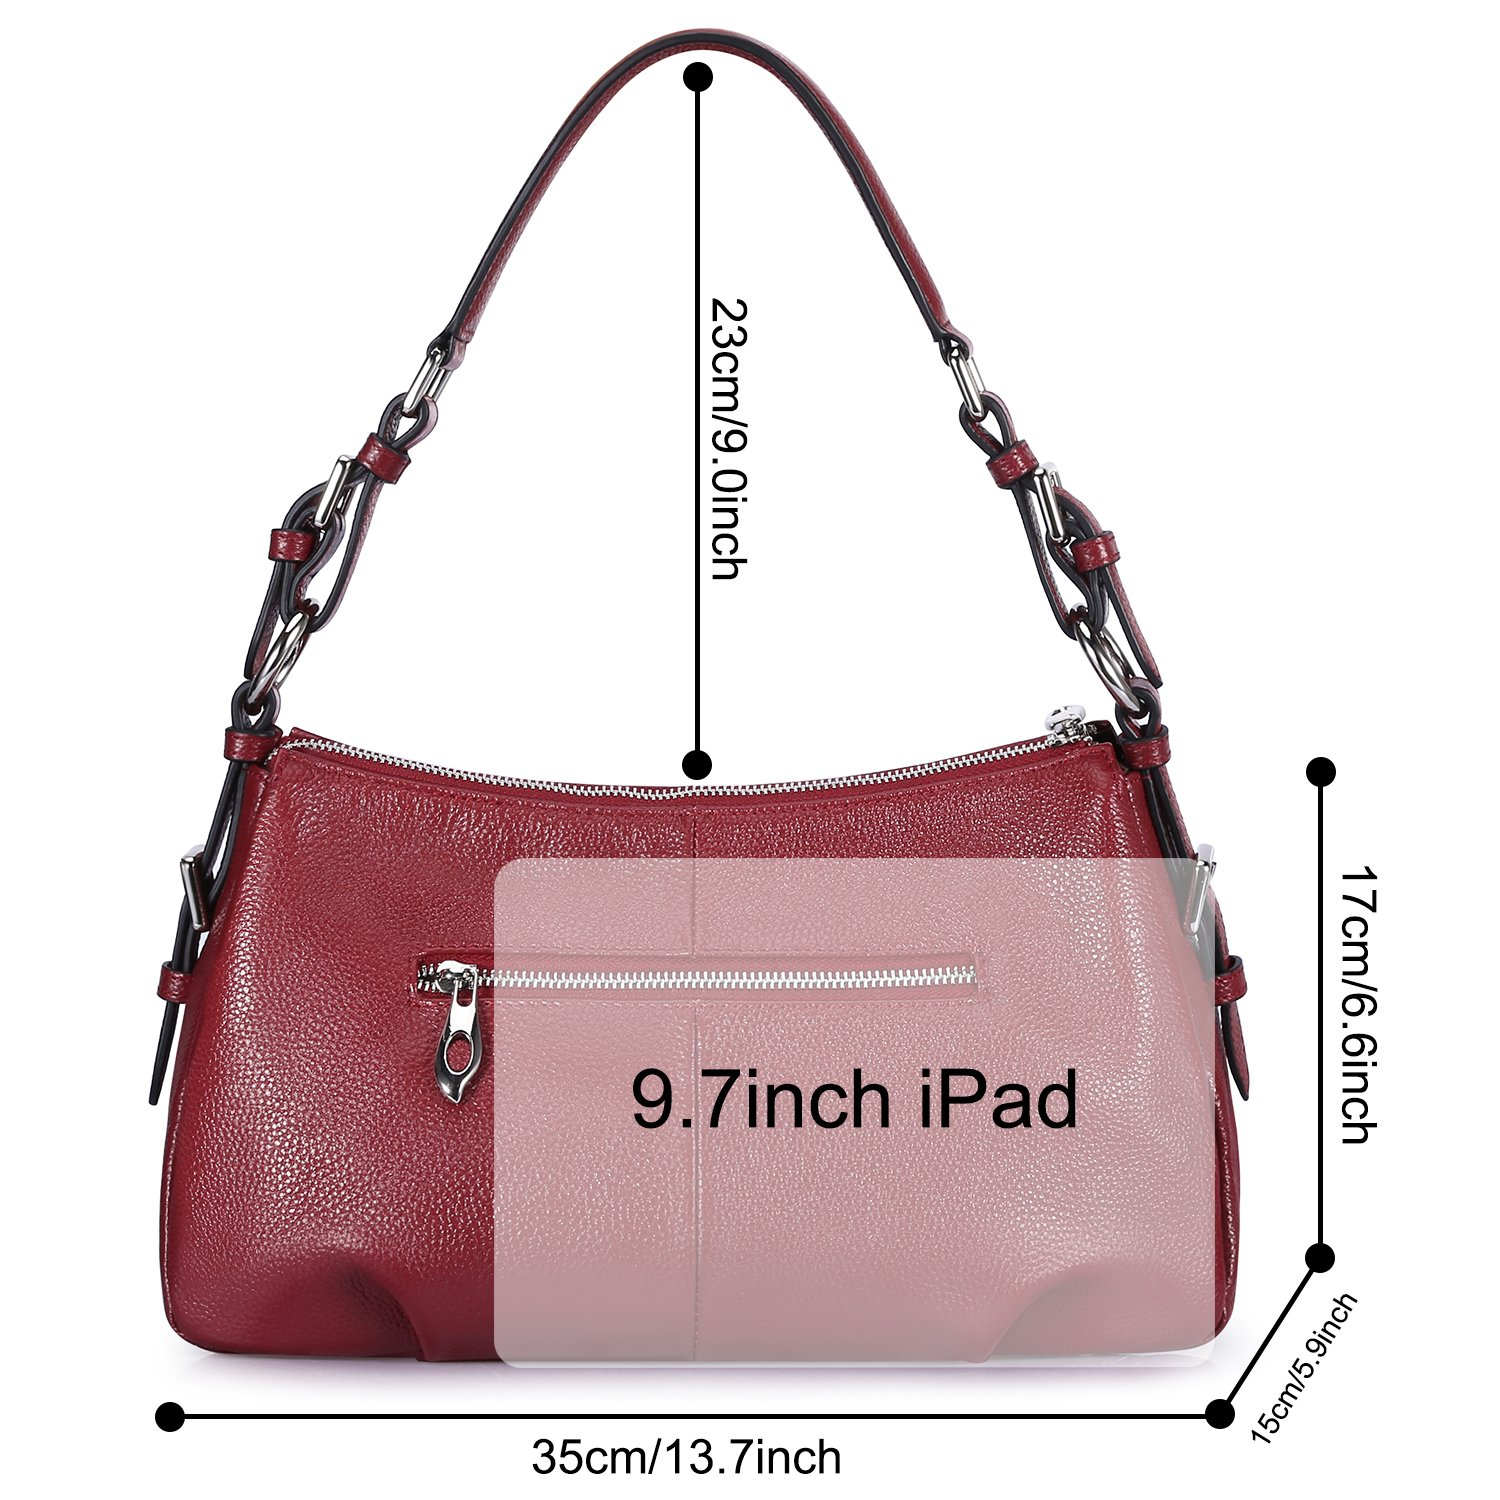 2bc5d9863f Valentine s Day Gifts S-ZONE Womens Hobo Genuine Leather Shoulder Bag Top-handle  Handbag Ladies Purses  Amazon.in  Shoes   Handbags